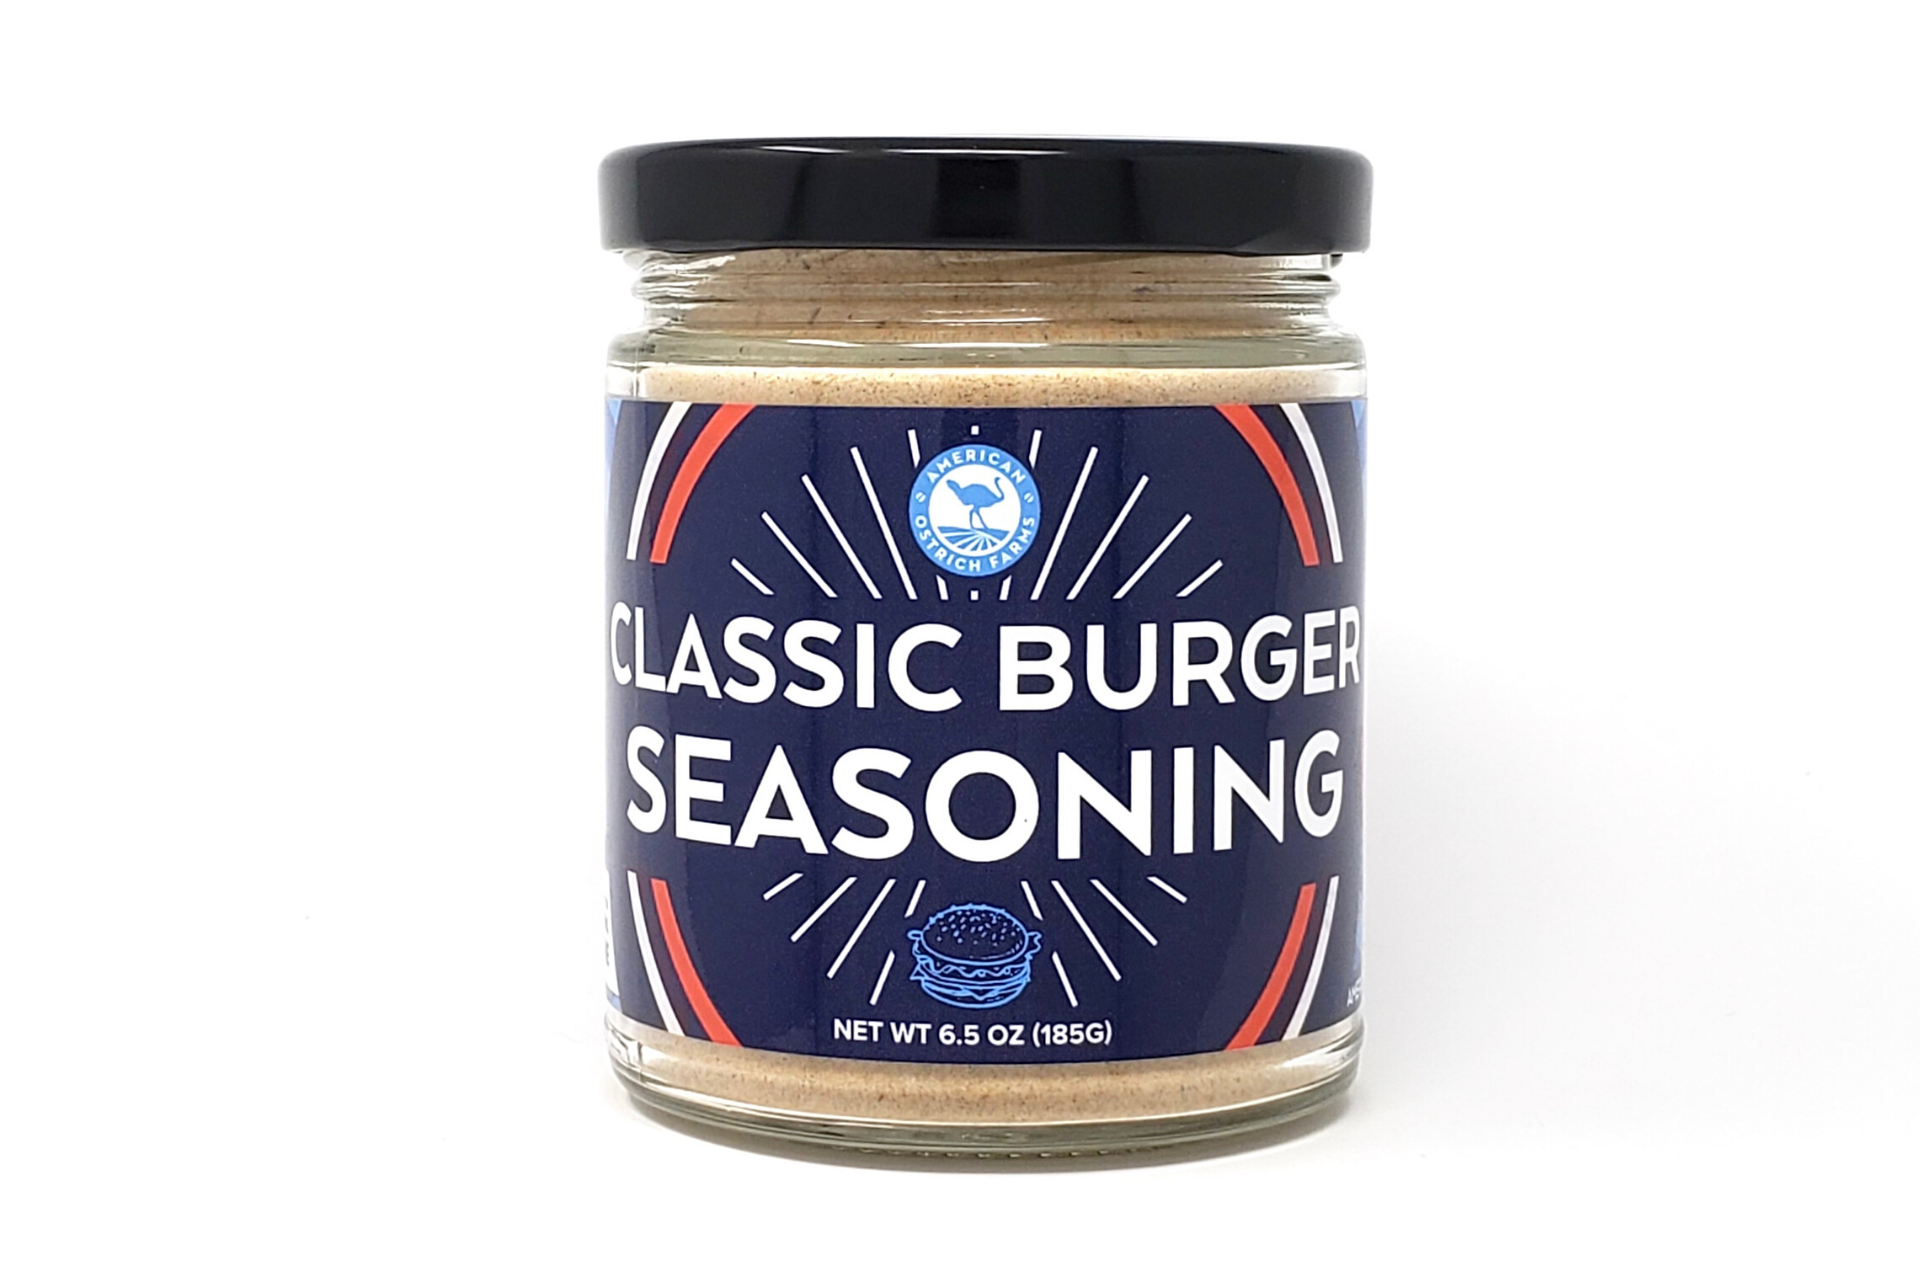 6.5 oz Jar of Classic Burger Seasoning